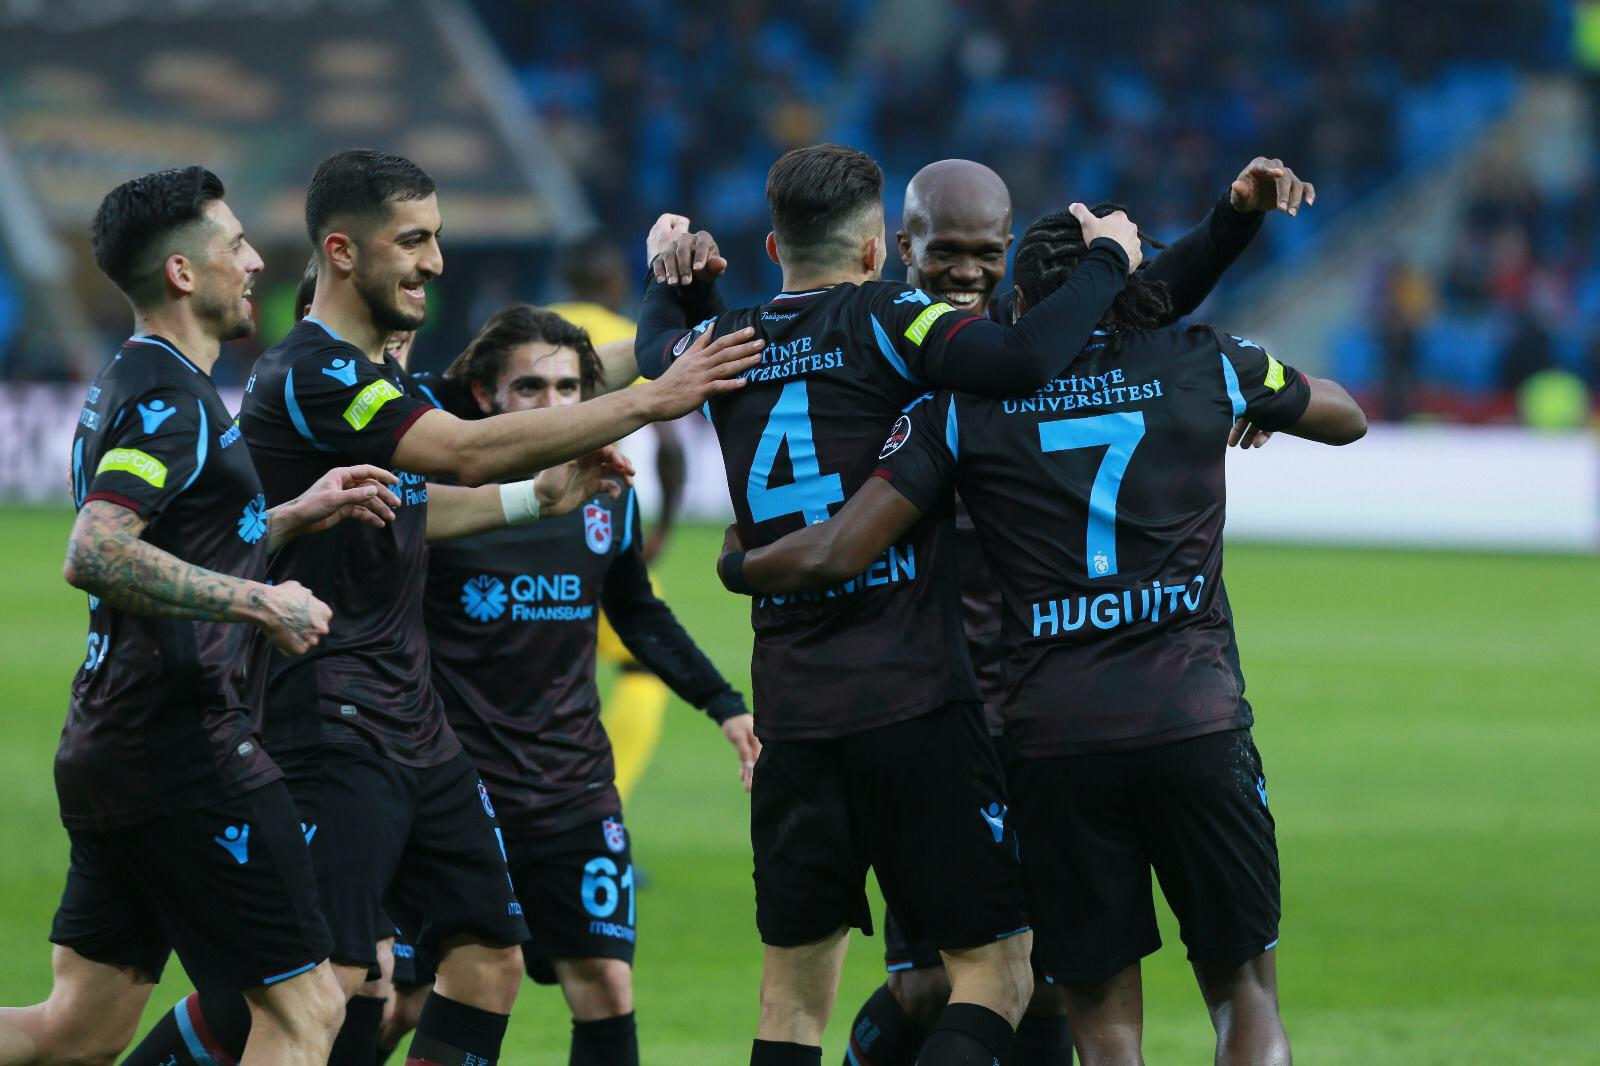 Trabzonspor Furious As CAS Upholds Fenerbahce's 2010/11 Title Despite Match-Fixing Complicity